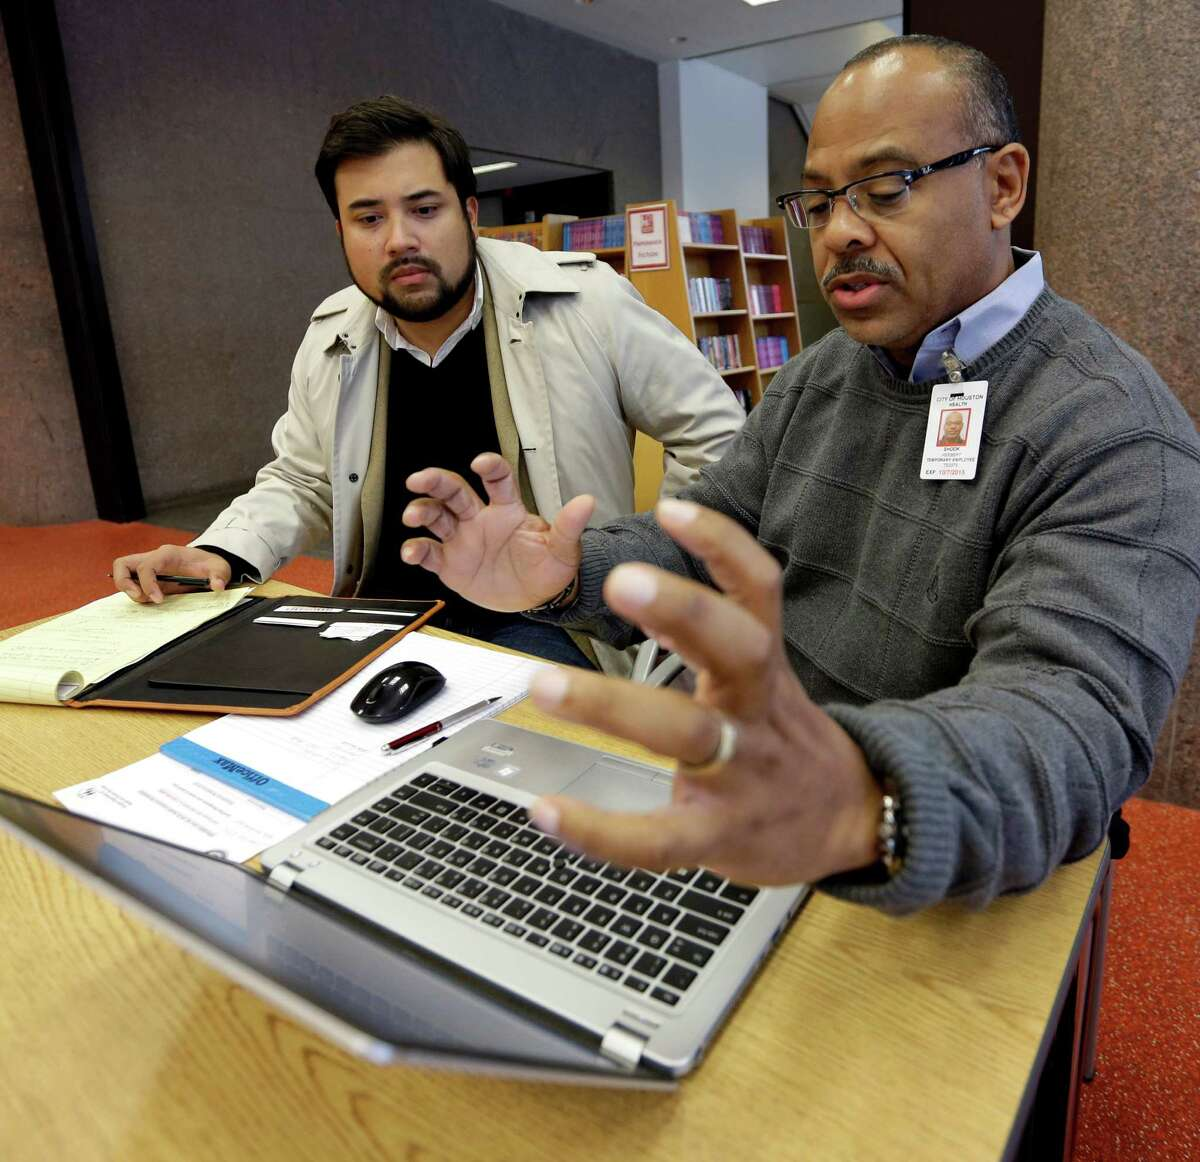 Herb Shook, right, helps David Ortez of Houston get information on the Affordable Care Act last year.